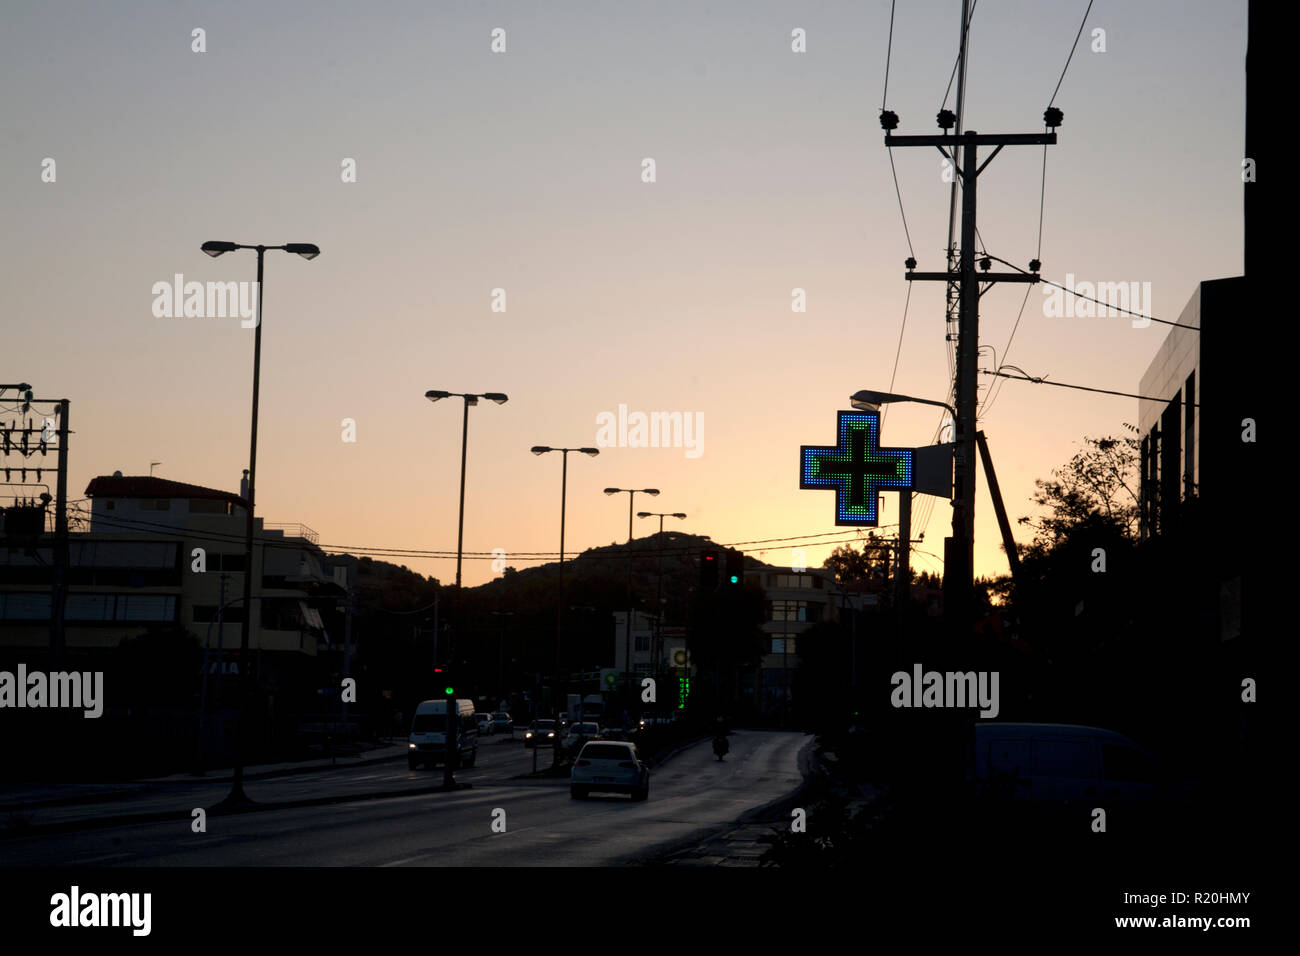 street scene at dawn vouliagmeni athens greece - Stock Image